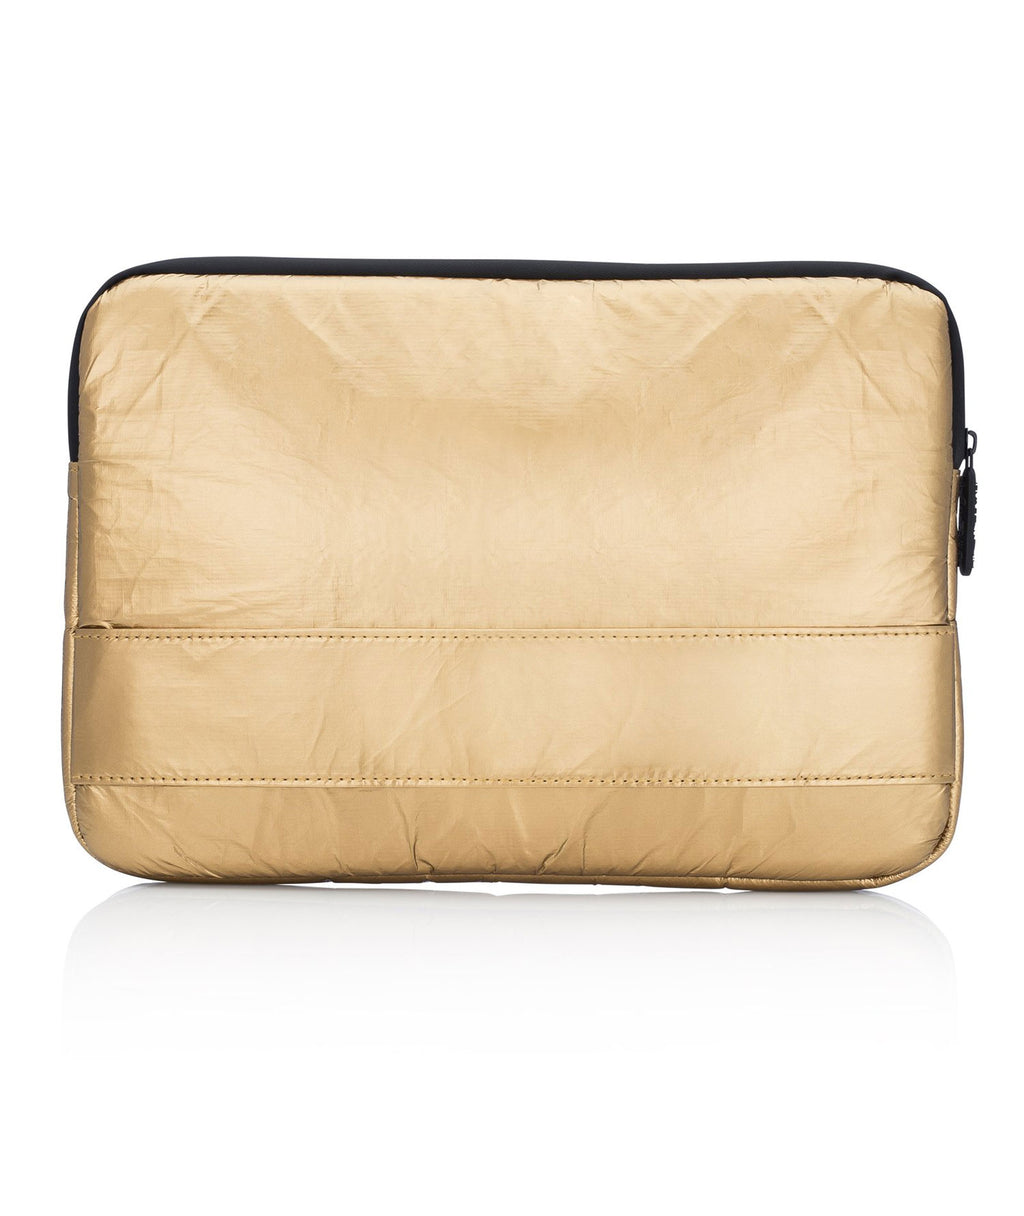 HI Love Travel Gold Computer Case